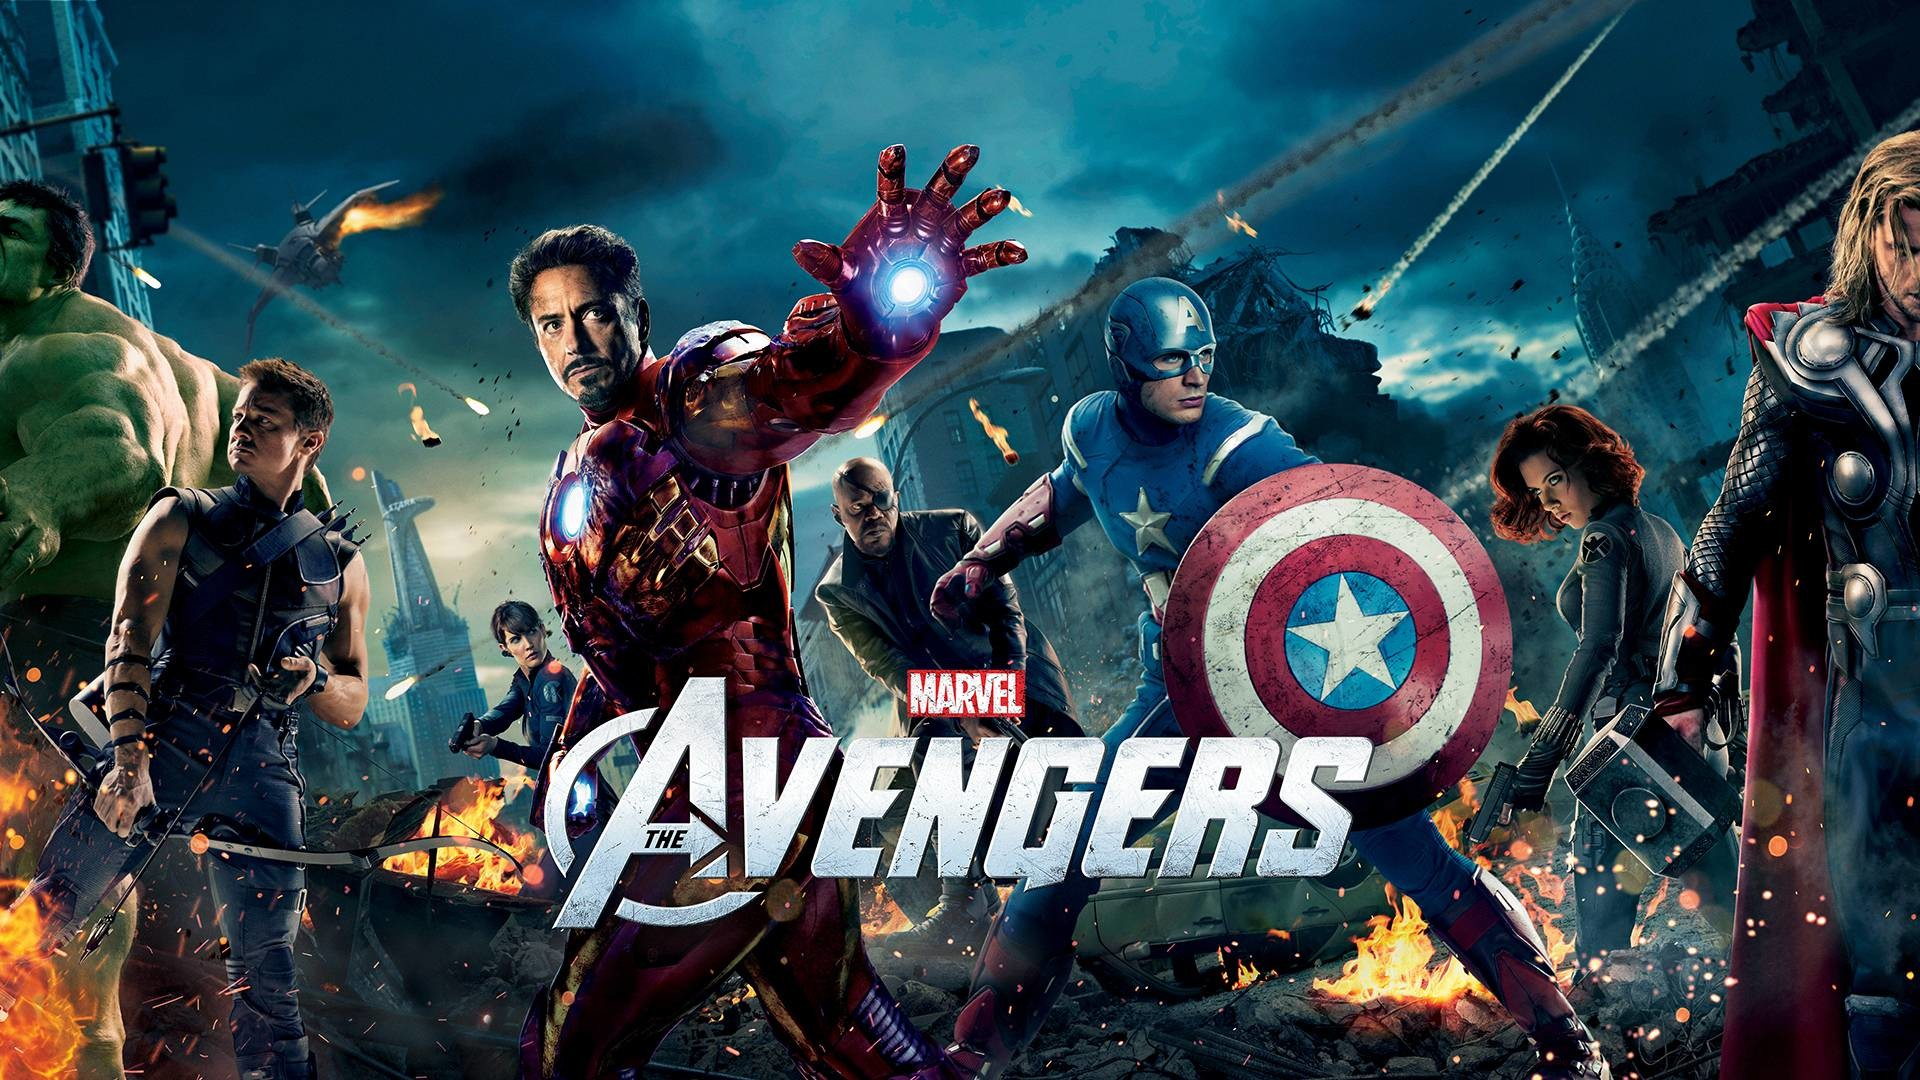 1920x1080 The Avengers HD Wallpaper Free Download | HD Free Wallpapers Download